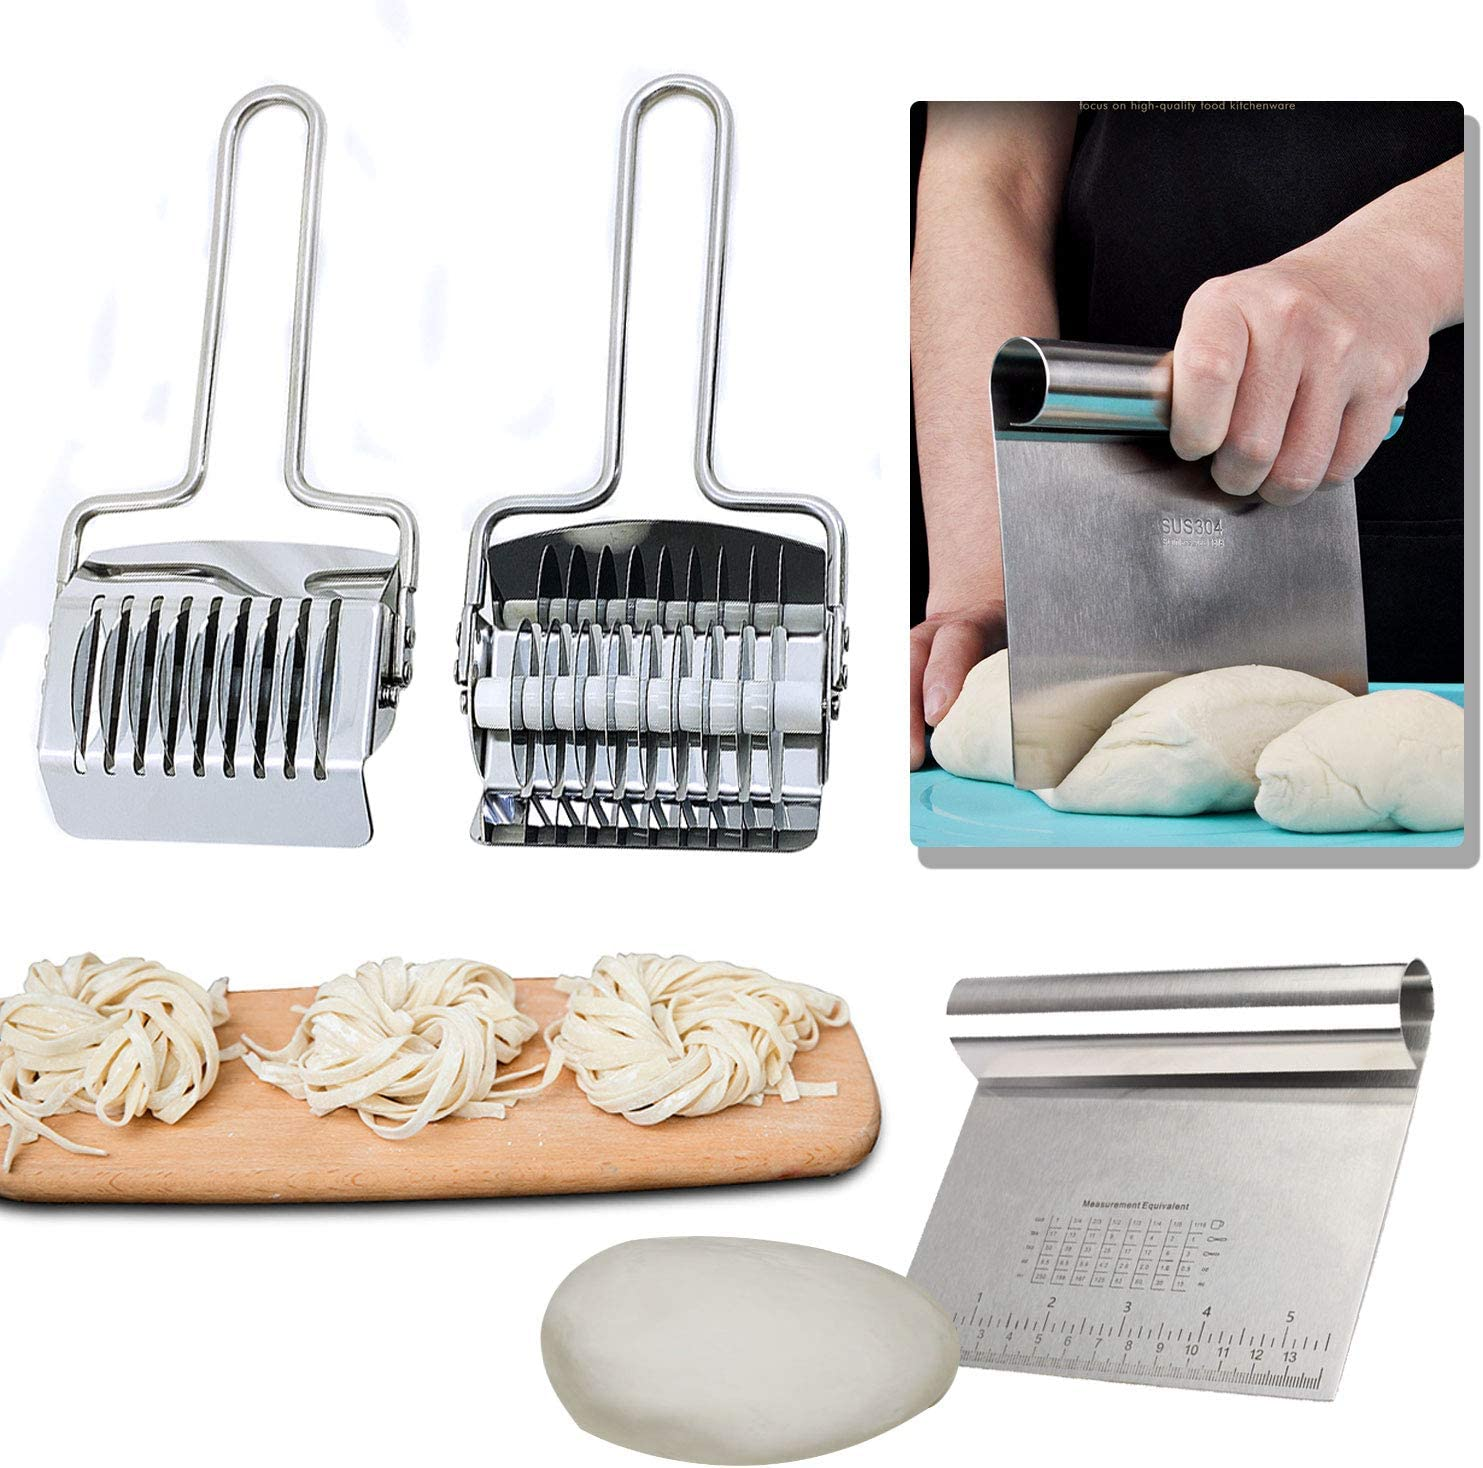 Stainless Steel Bench Scraper and Noodle Cutter, Kitchen Chopper Noodle Lattice Roller Pasta Spaghetti Maker Dough Pizza Pastry Cake Food Cutters' Tool